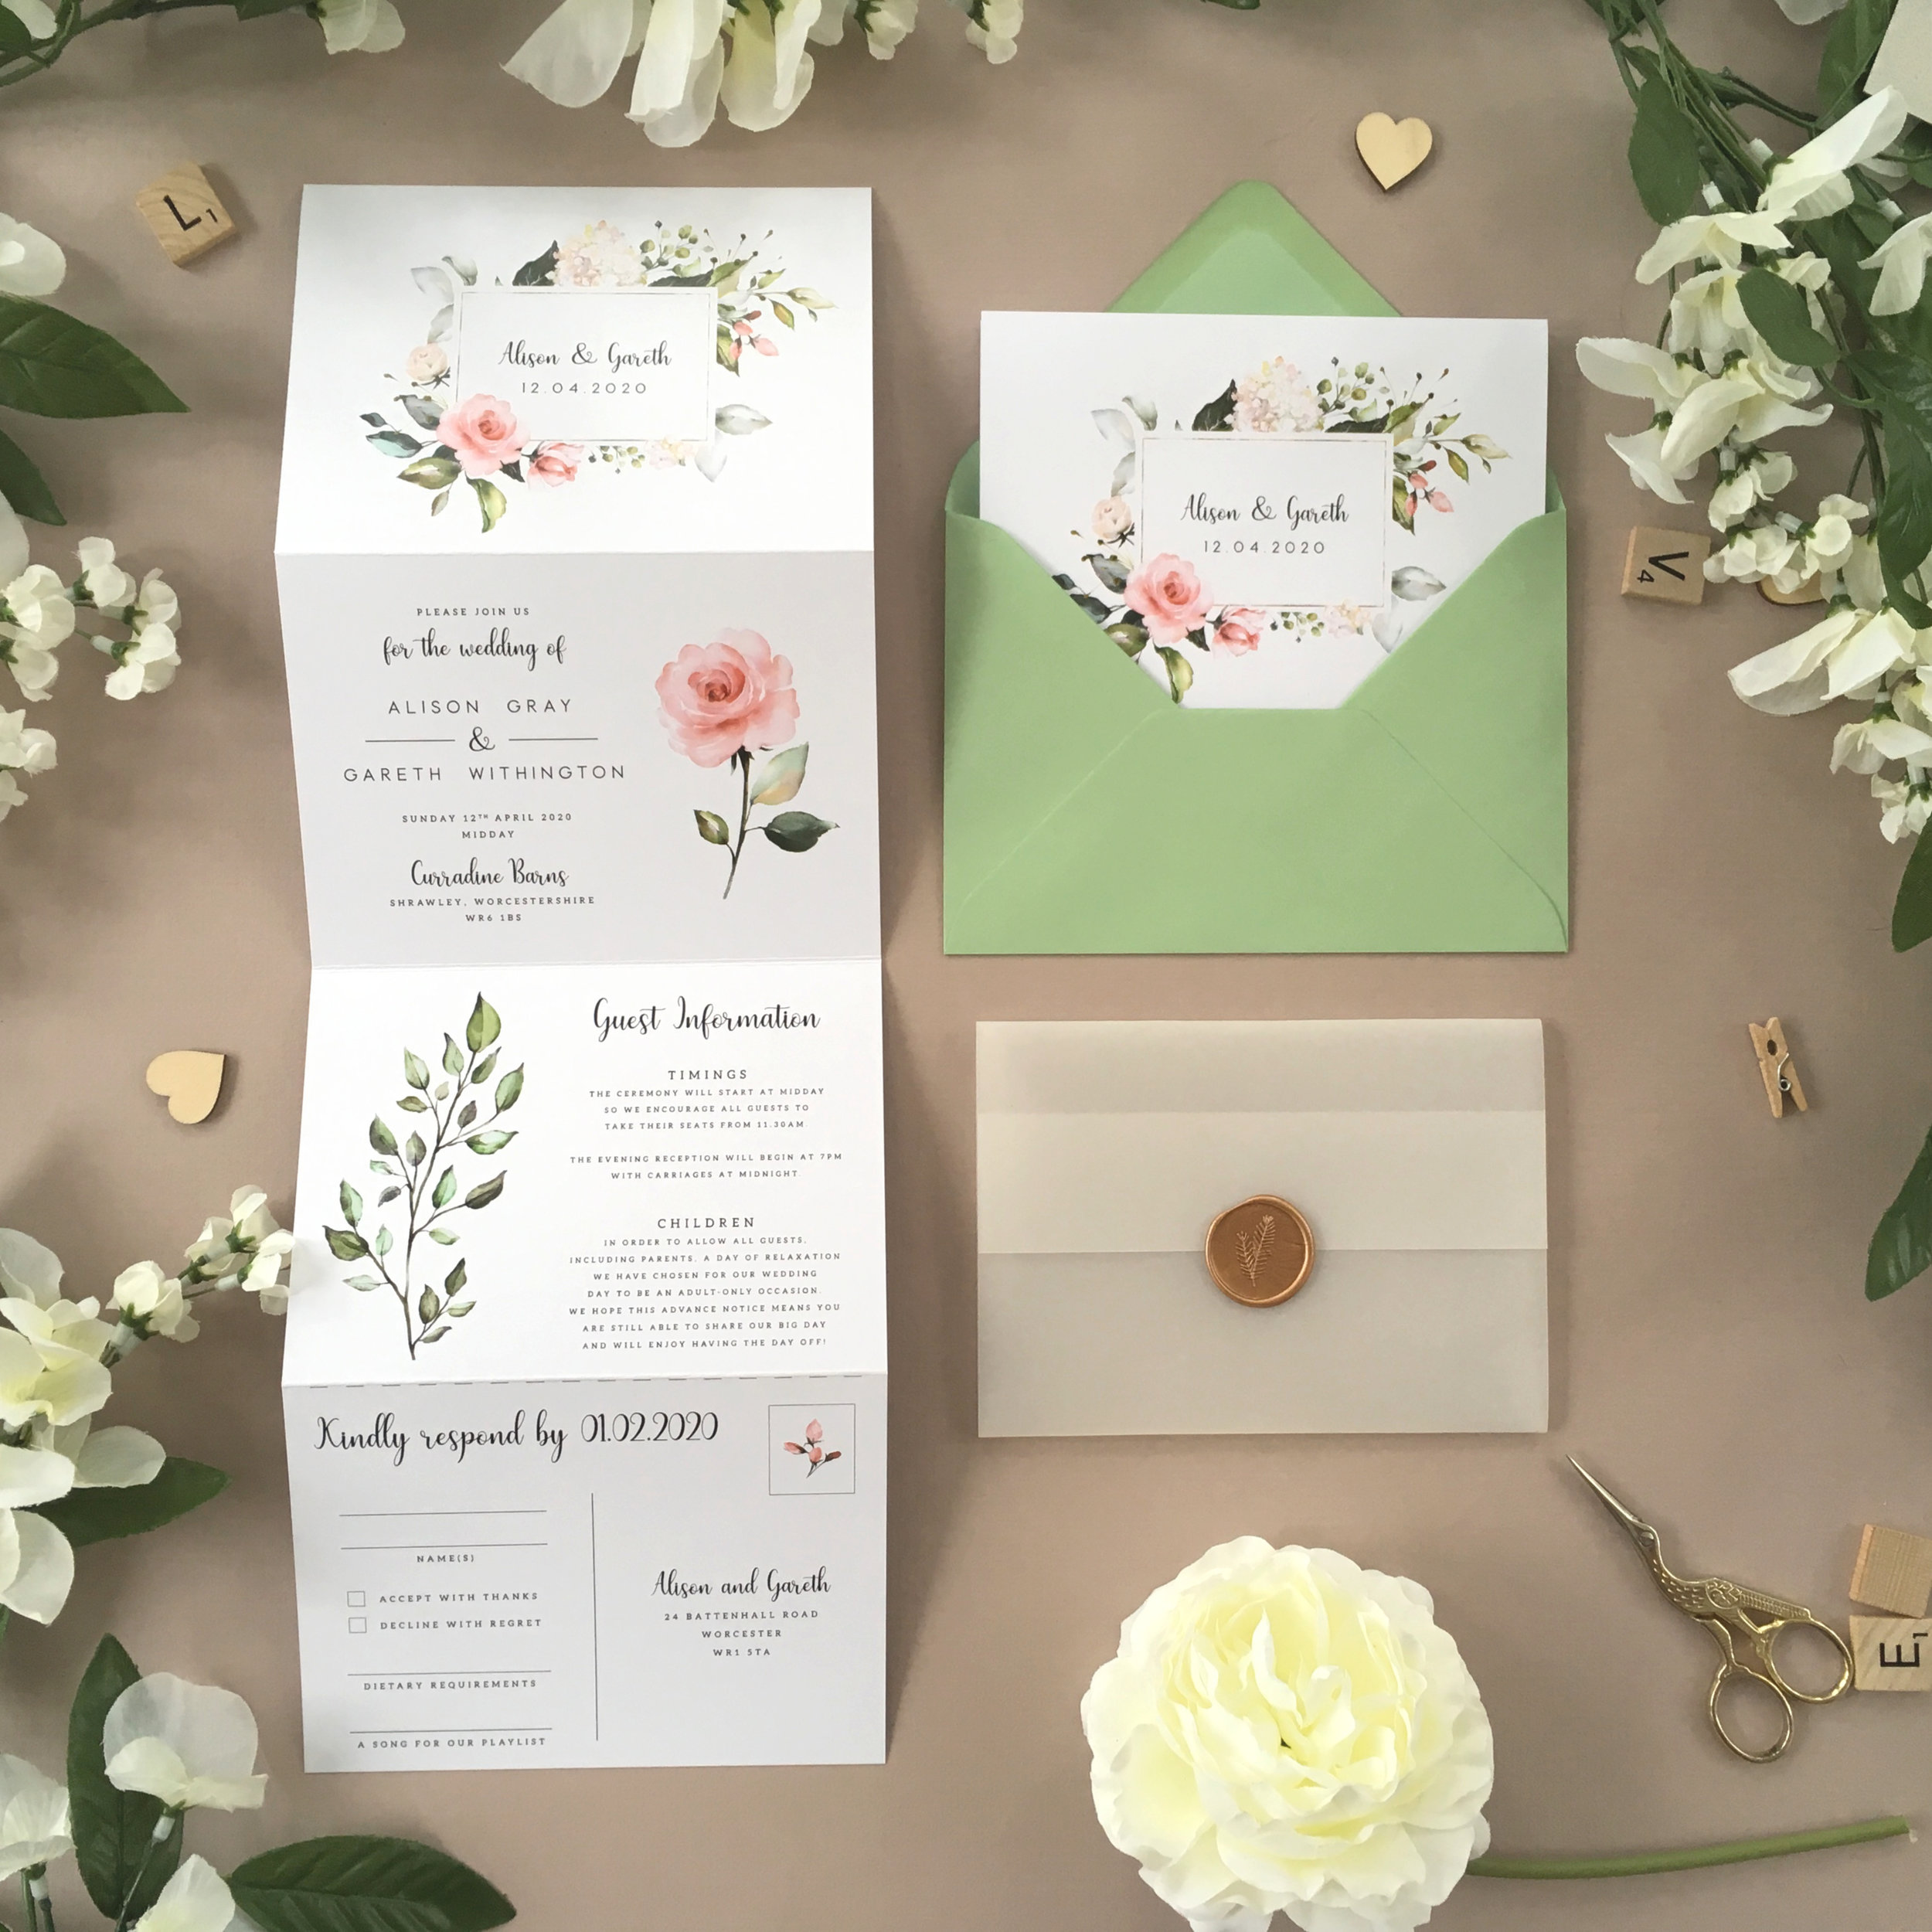 Hampstead - Our Hampstead collection uses beautiful floral artwork on this concertina wedding invitation, alongside vintage typography for a pretty invitation design.Our concertina invitations are a great all-in-one solution, with a detachable RSVP at the bottom of the invitation - all guests need to do is fill in their details, put a stamp in the corner and post!Concertina invitations can be provided on an as-is basis, or can be provided bound with a vellum jacket and timeless wax seal, or tied with ribbon or twine for a lovely hand-finished approach.- Concertina Invitation - from £1.95- Ribbon or Twine - £0.40- Vellum Jacket - £0.40- Wax Seal - £0.85 (Custom engraving also available)White envelope provided as standard with coloured upgrade available.